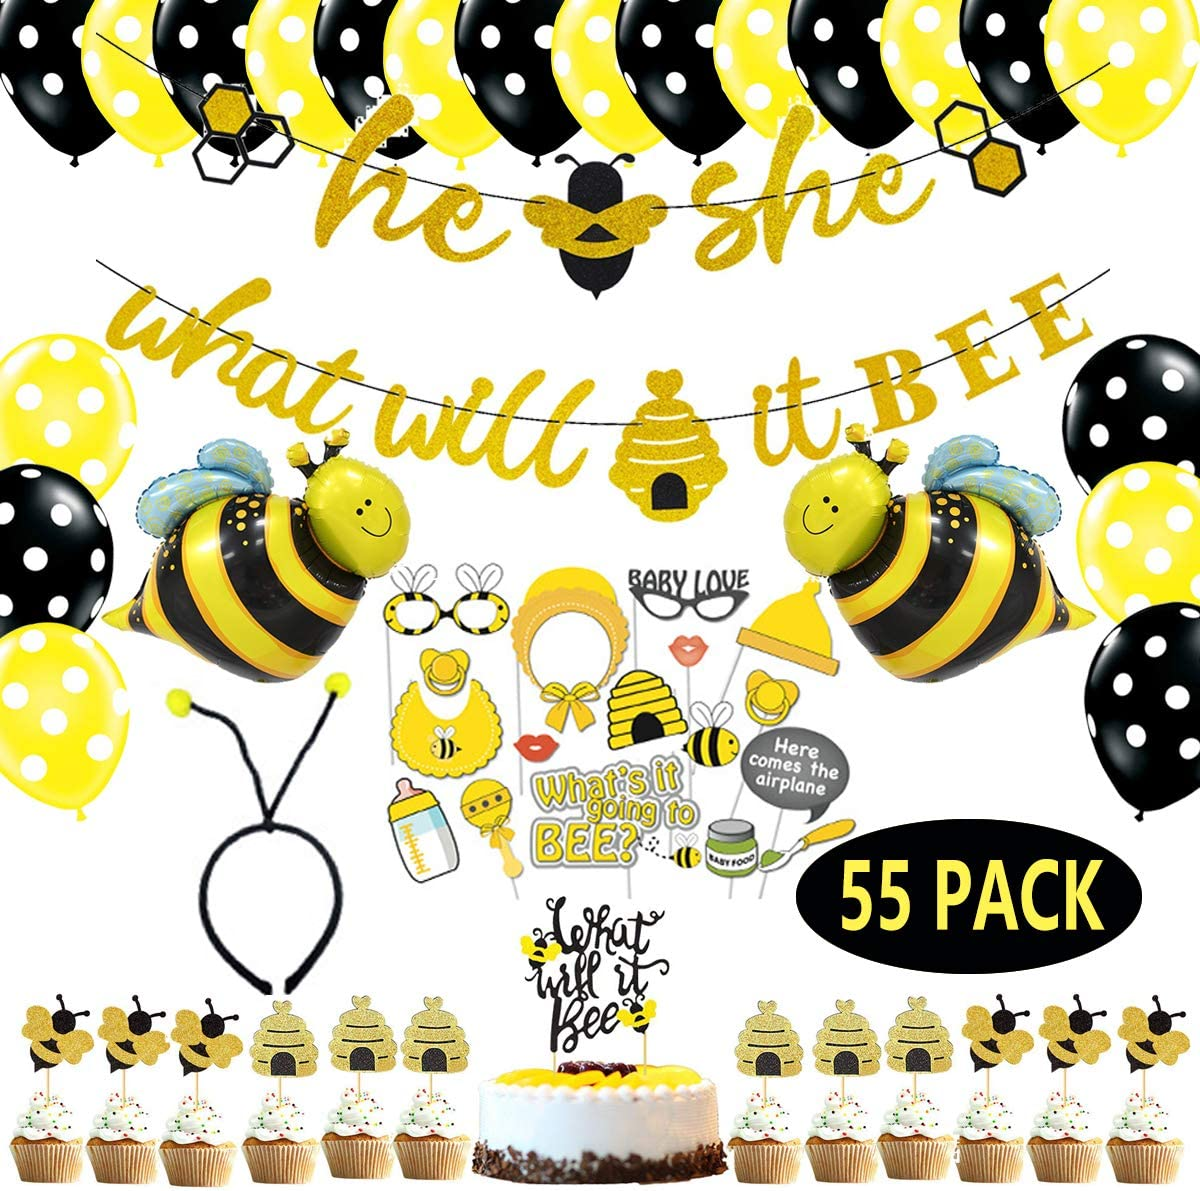 What Will It Bee Gender Reveal Party , What Will it Bee Banner Cake Toppers Glitter Bee Honeycomb Cupcake Toppers Bee Balloon Headband Photo Booth Props for Baby Reveal Party Mommy to bee Decorations